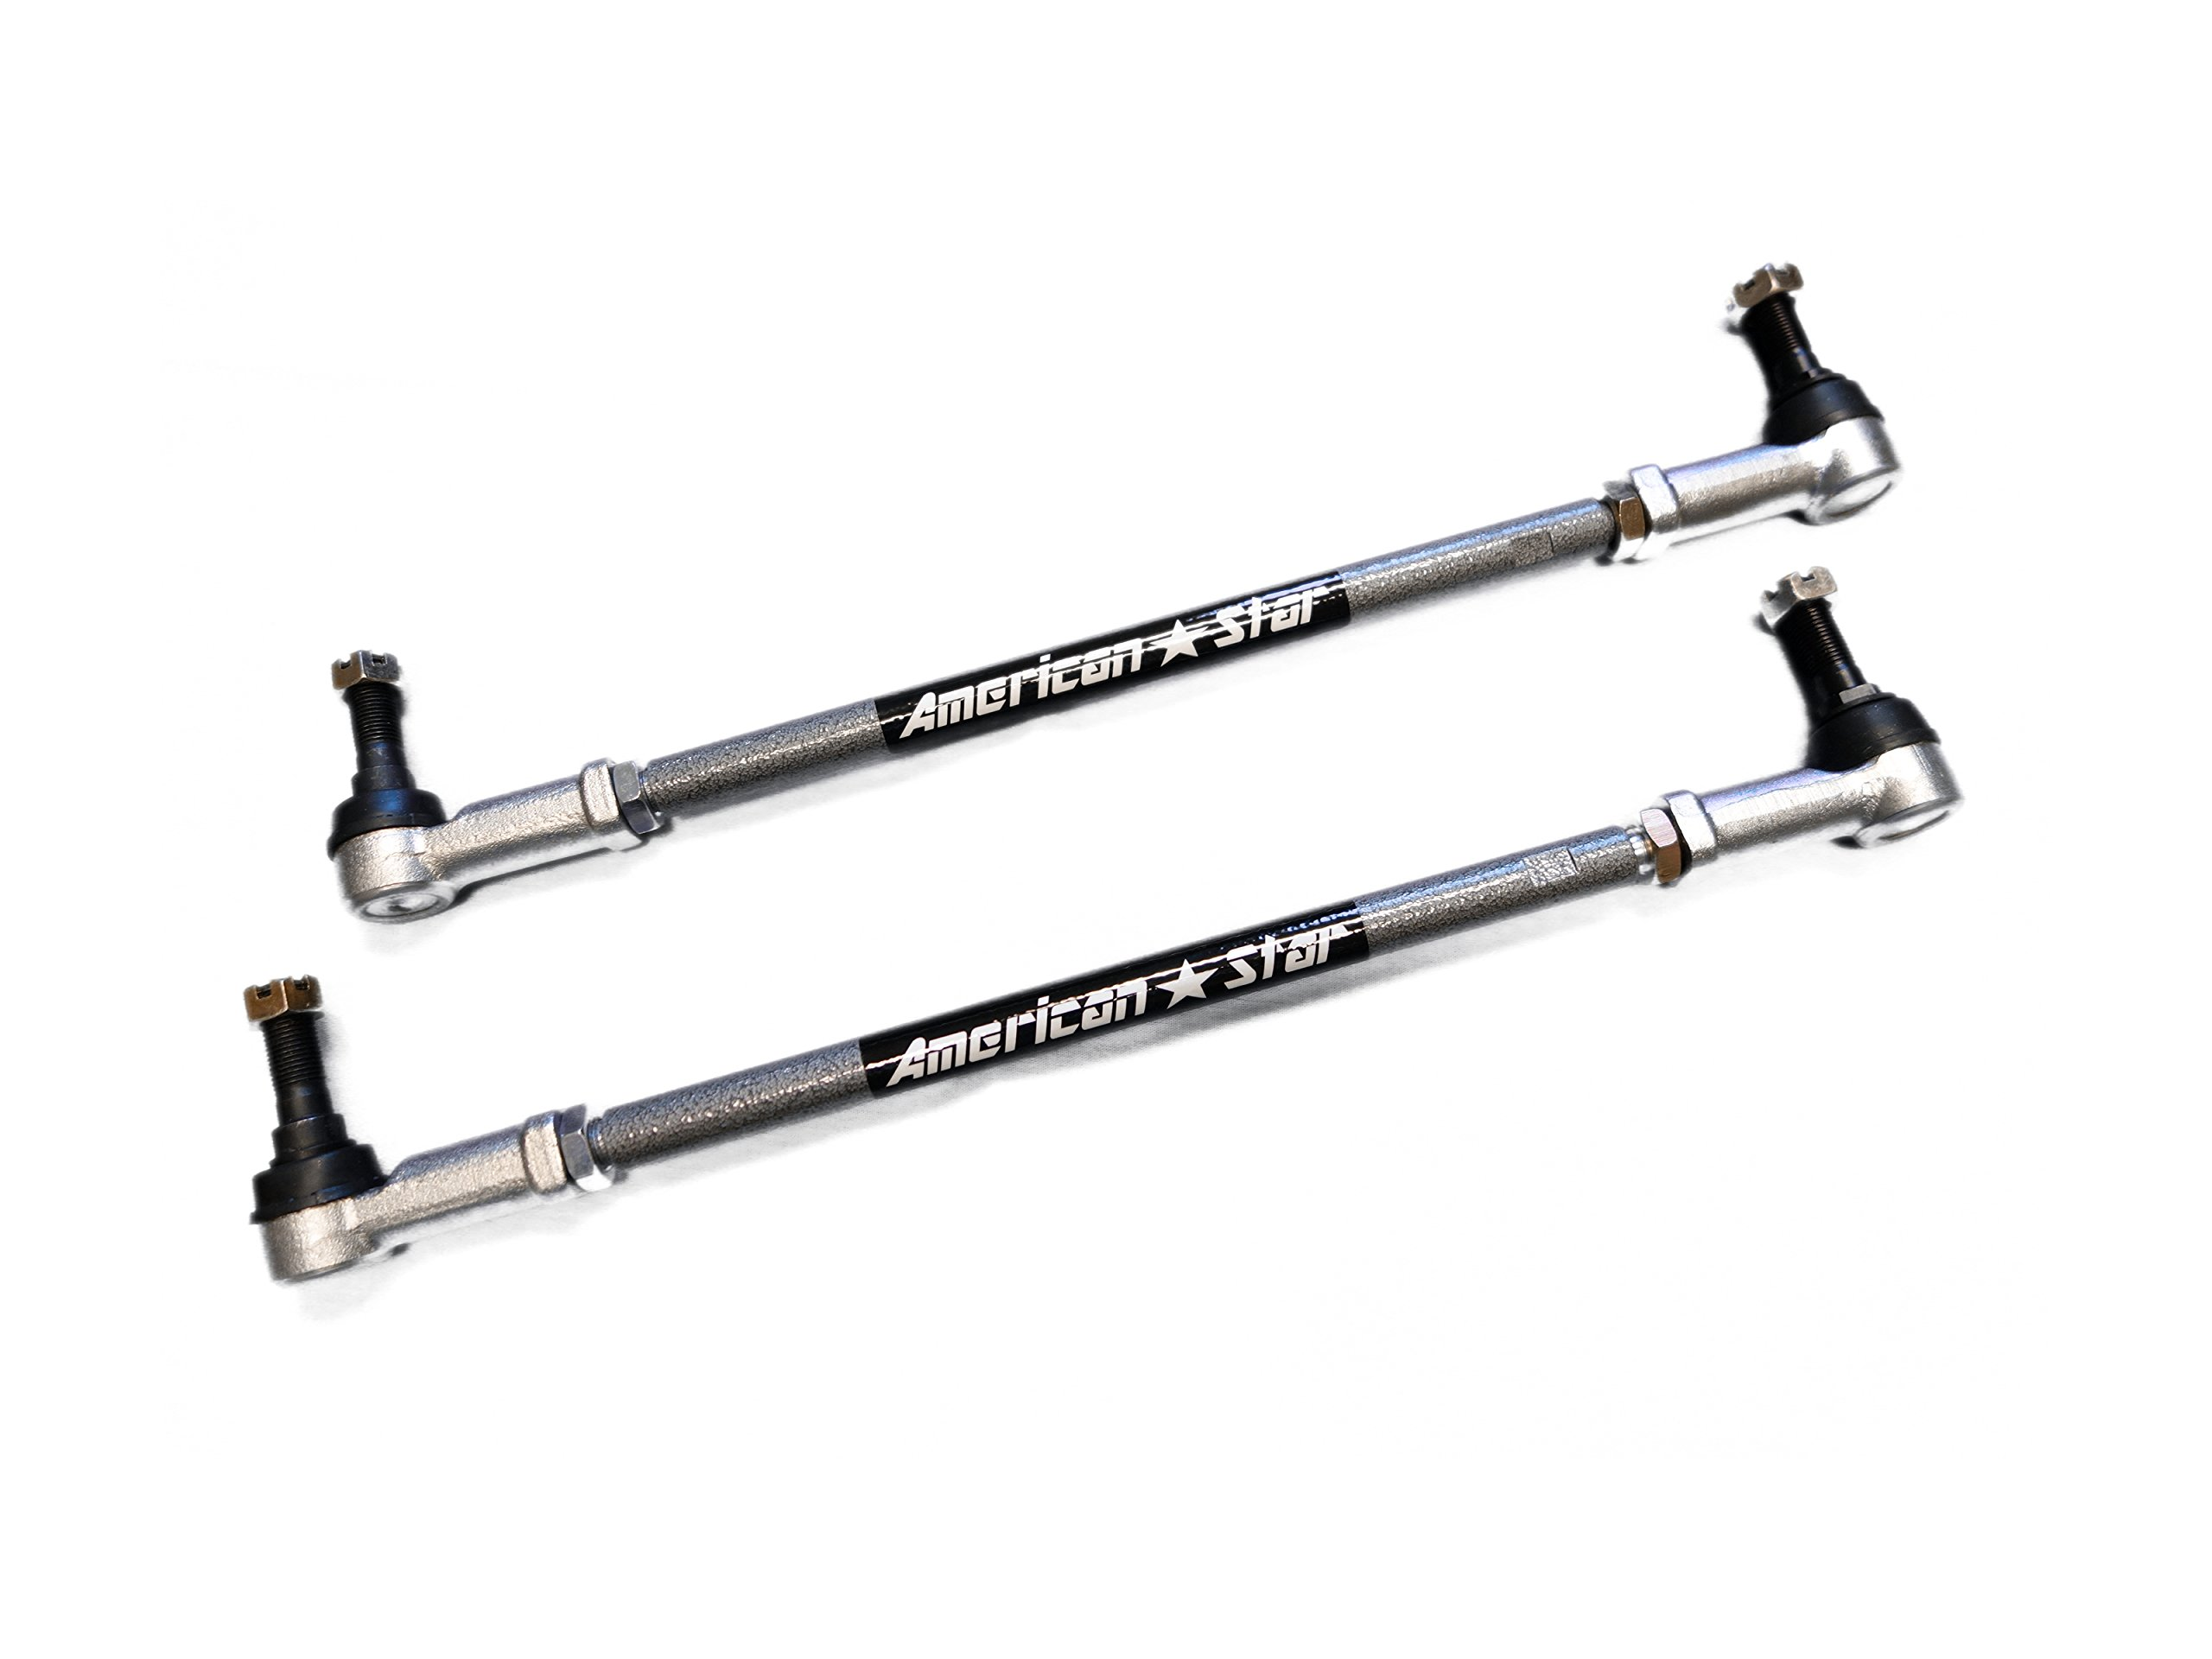 Buy American Star 4130 Chromoly Steel ATV Tie Rod Upgrade